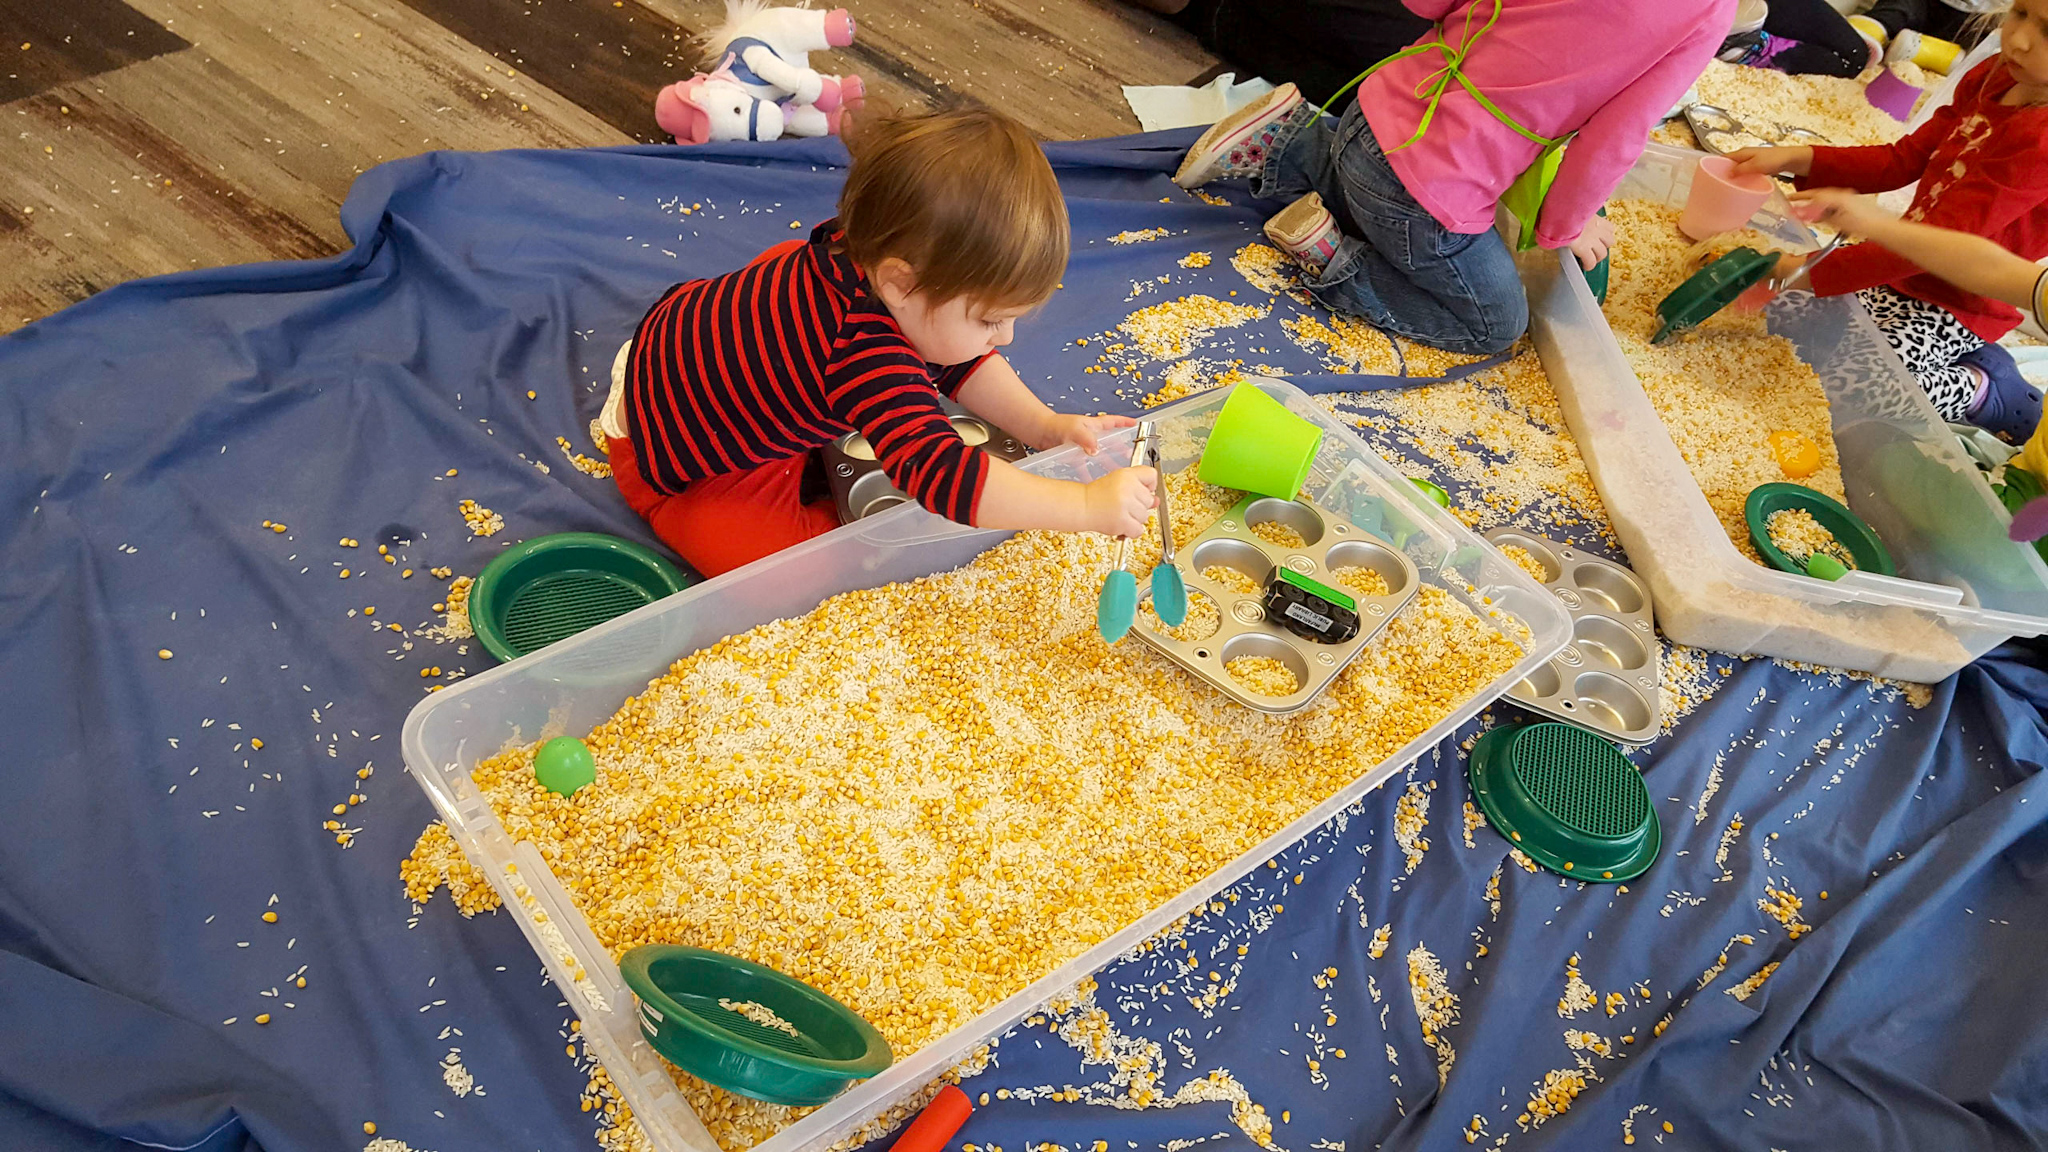 toddler playing in corn sensory bin